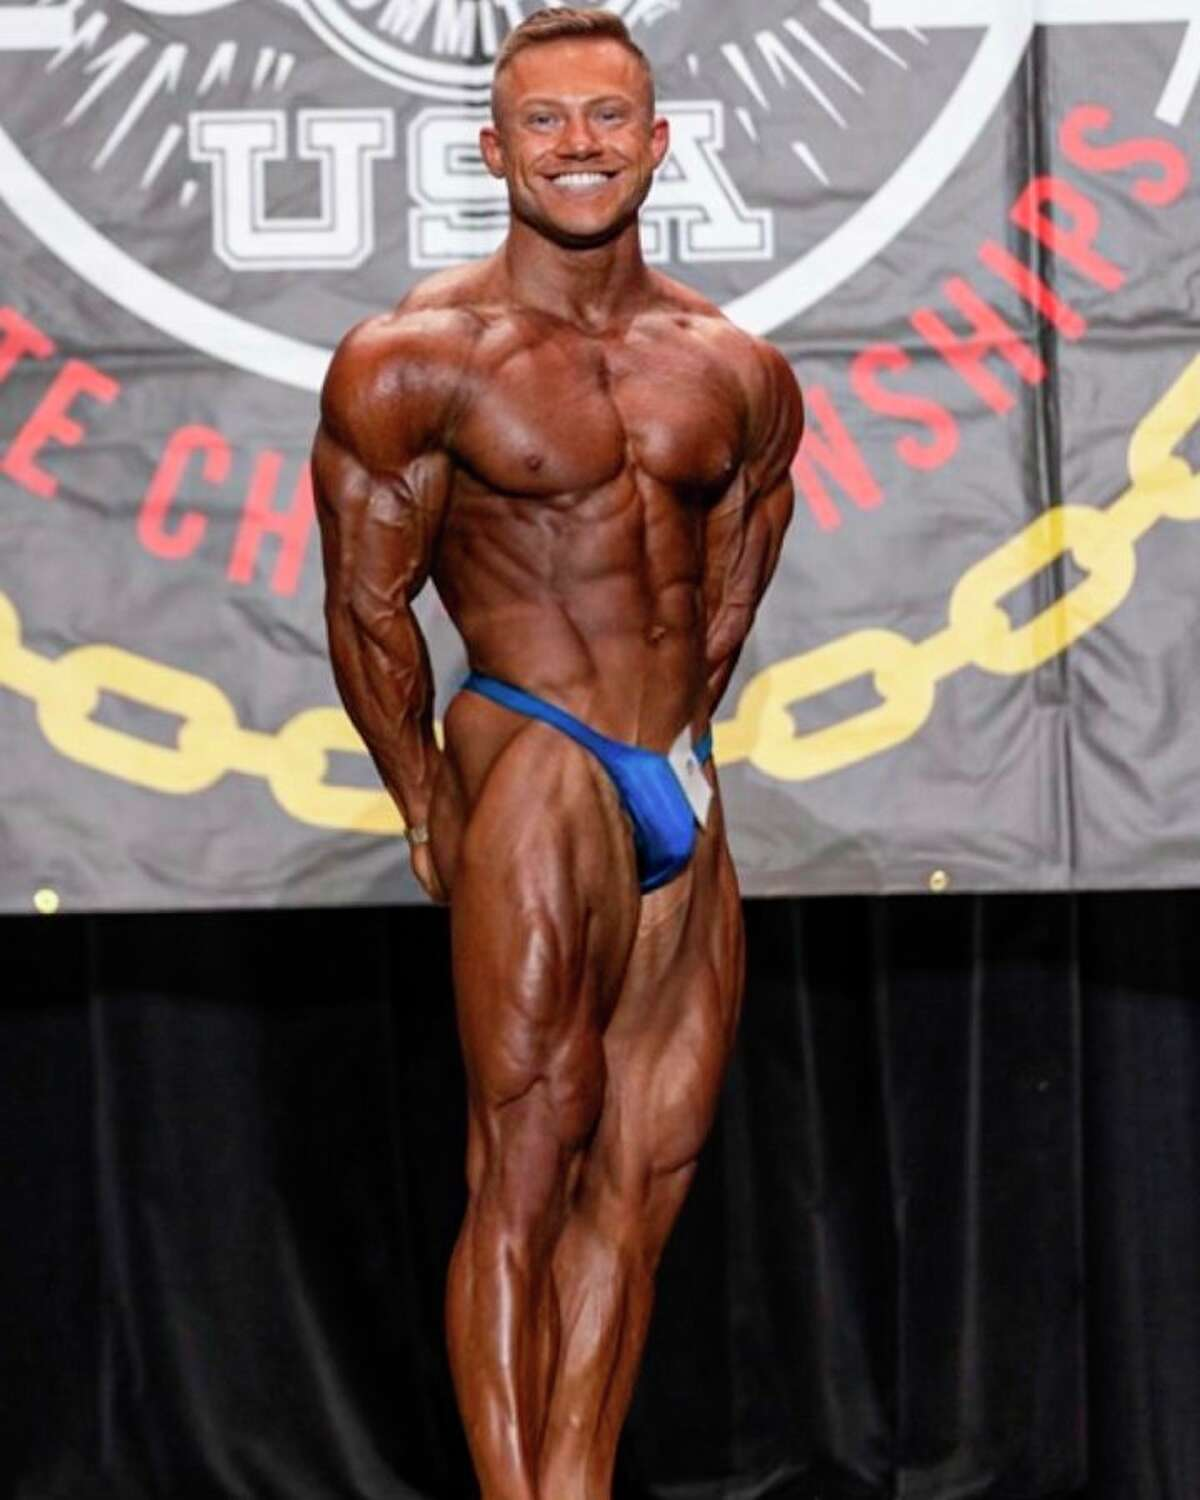 Patten, now living in Freeland, won the Michigan State Bodybuilding championship in the Men's Classic Physique open class - he also took the win in Men's Bodybuilding open middleweight on June 5.